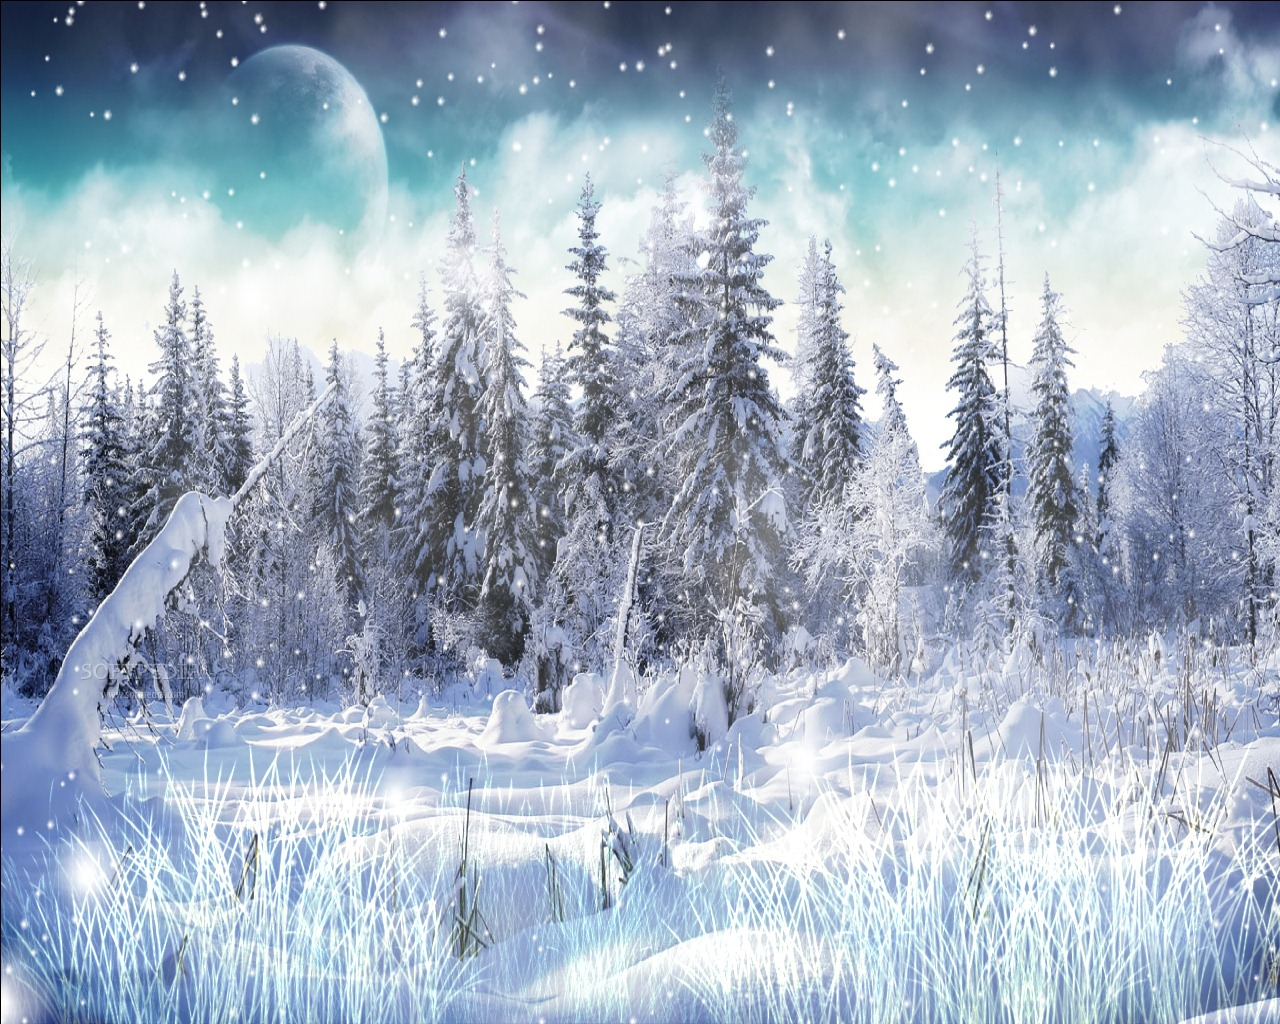 Download winter snow screensaver 1 0 - Free screensavers snowflakes falling ...